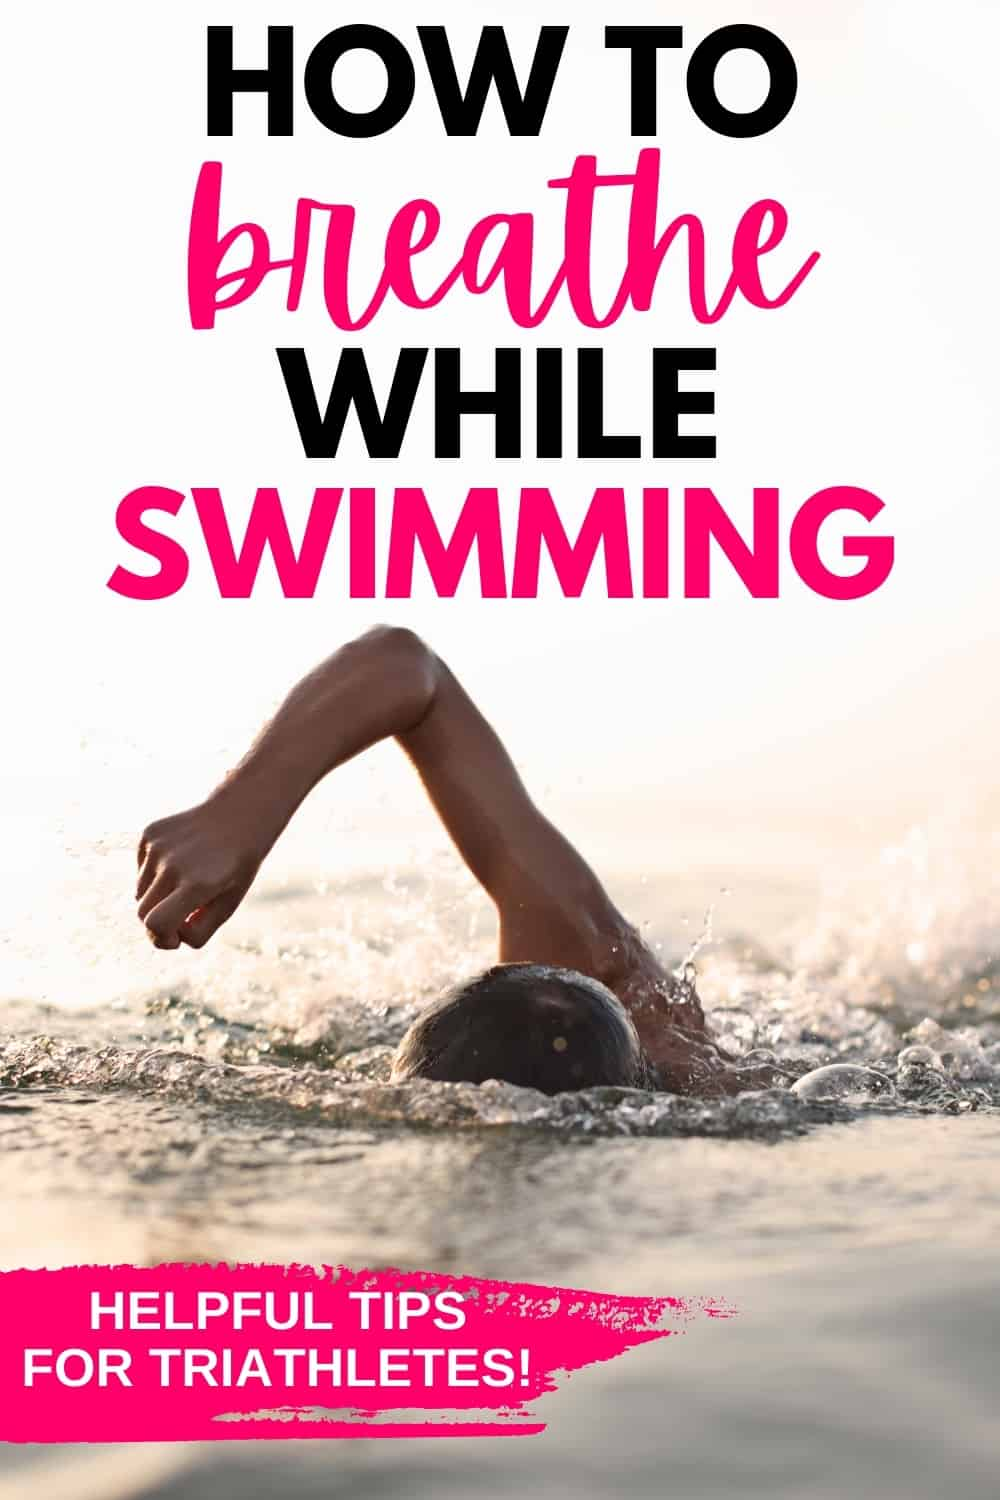 a woman swimming in open water with a text overlay that says how to breathe while swimming